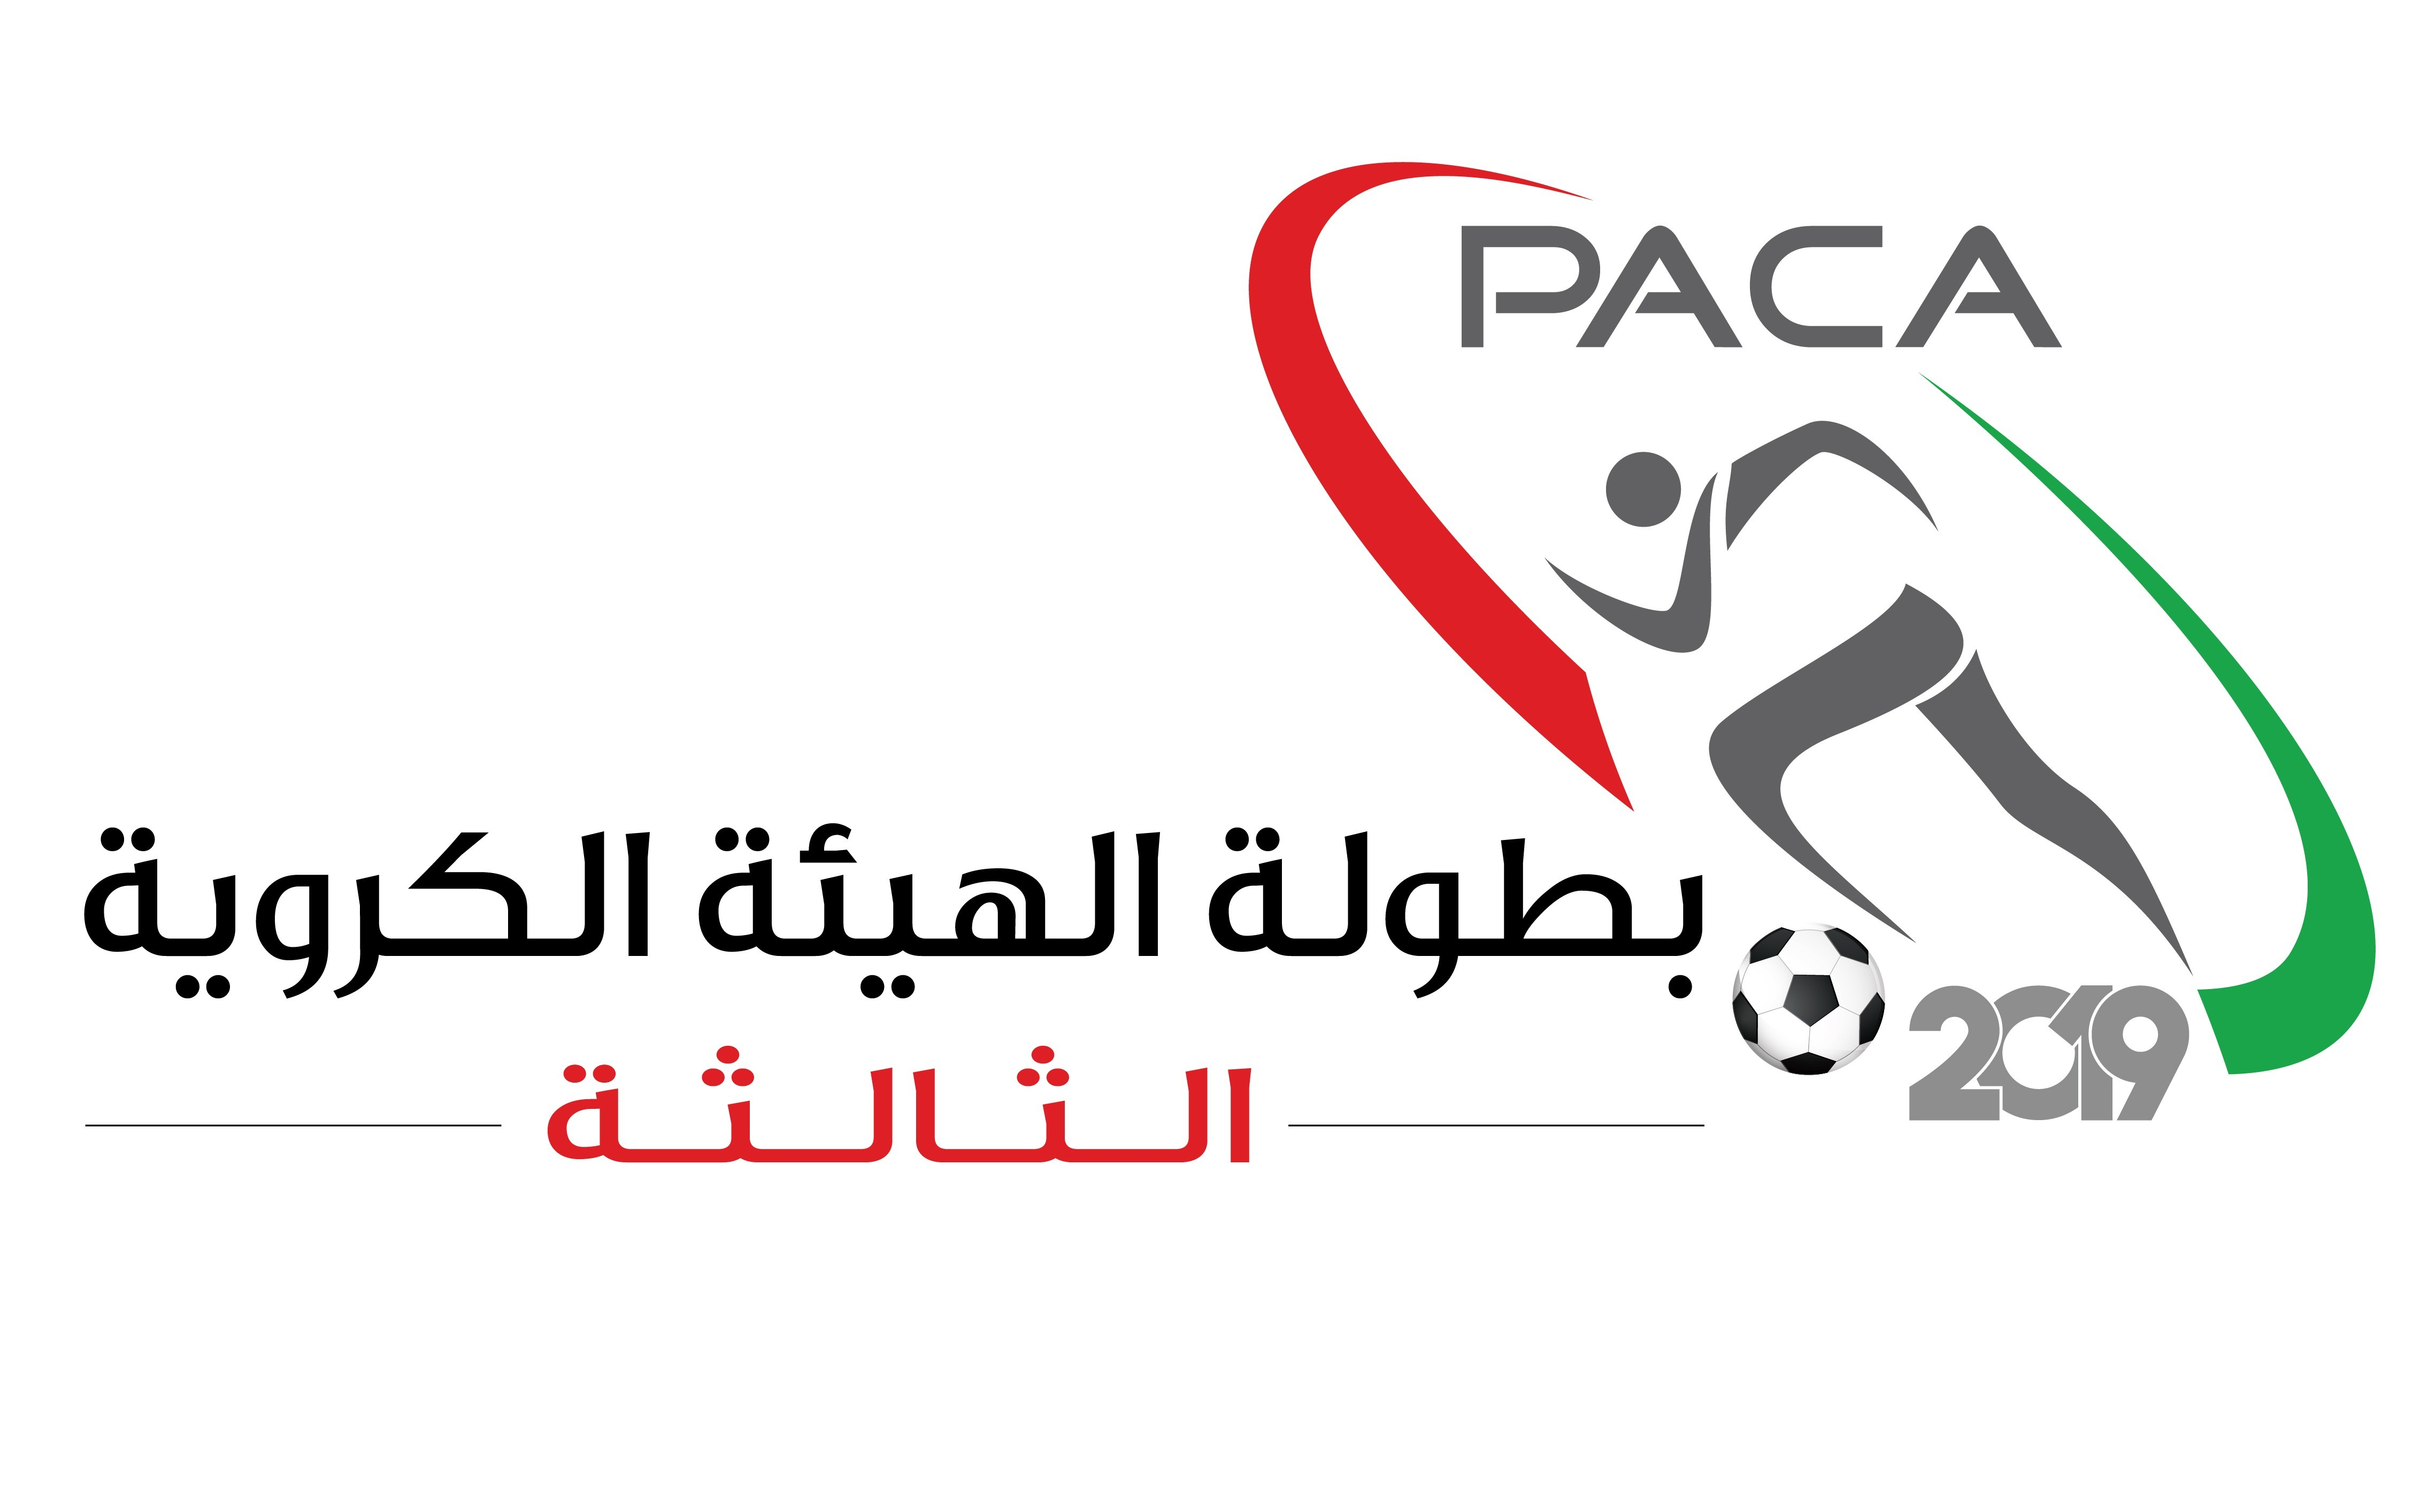 Launch of the third football championship of the Public Authority for Civil Aviation